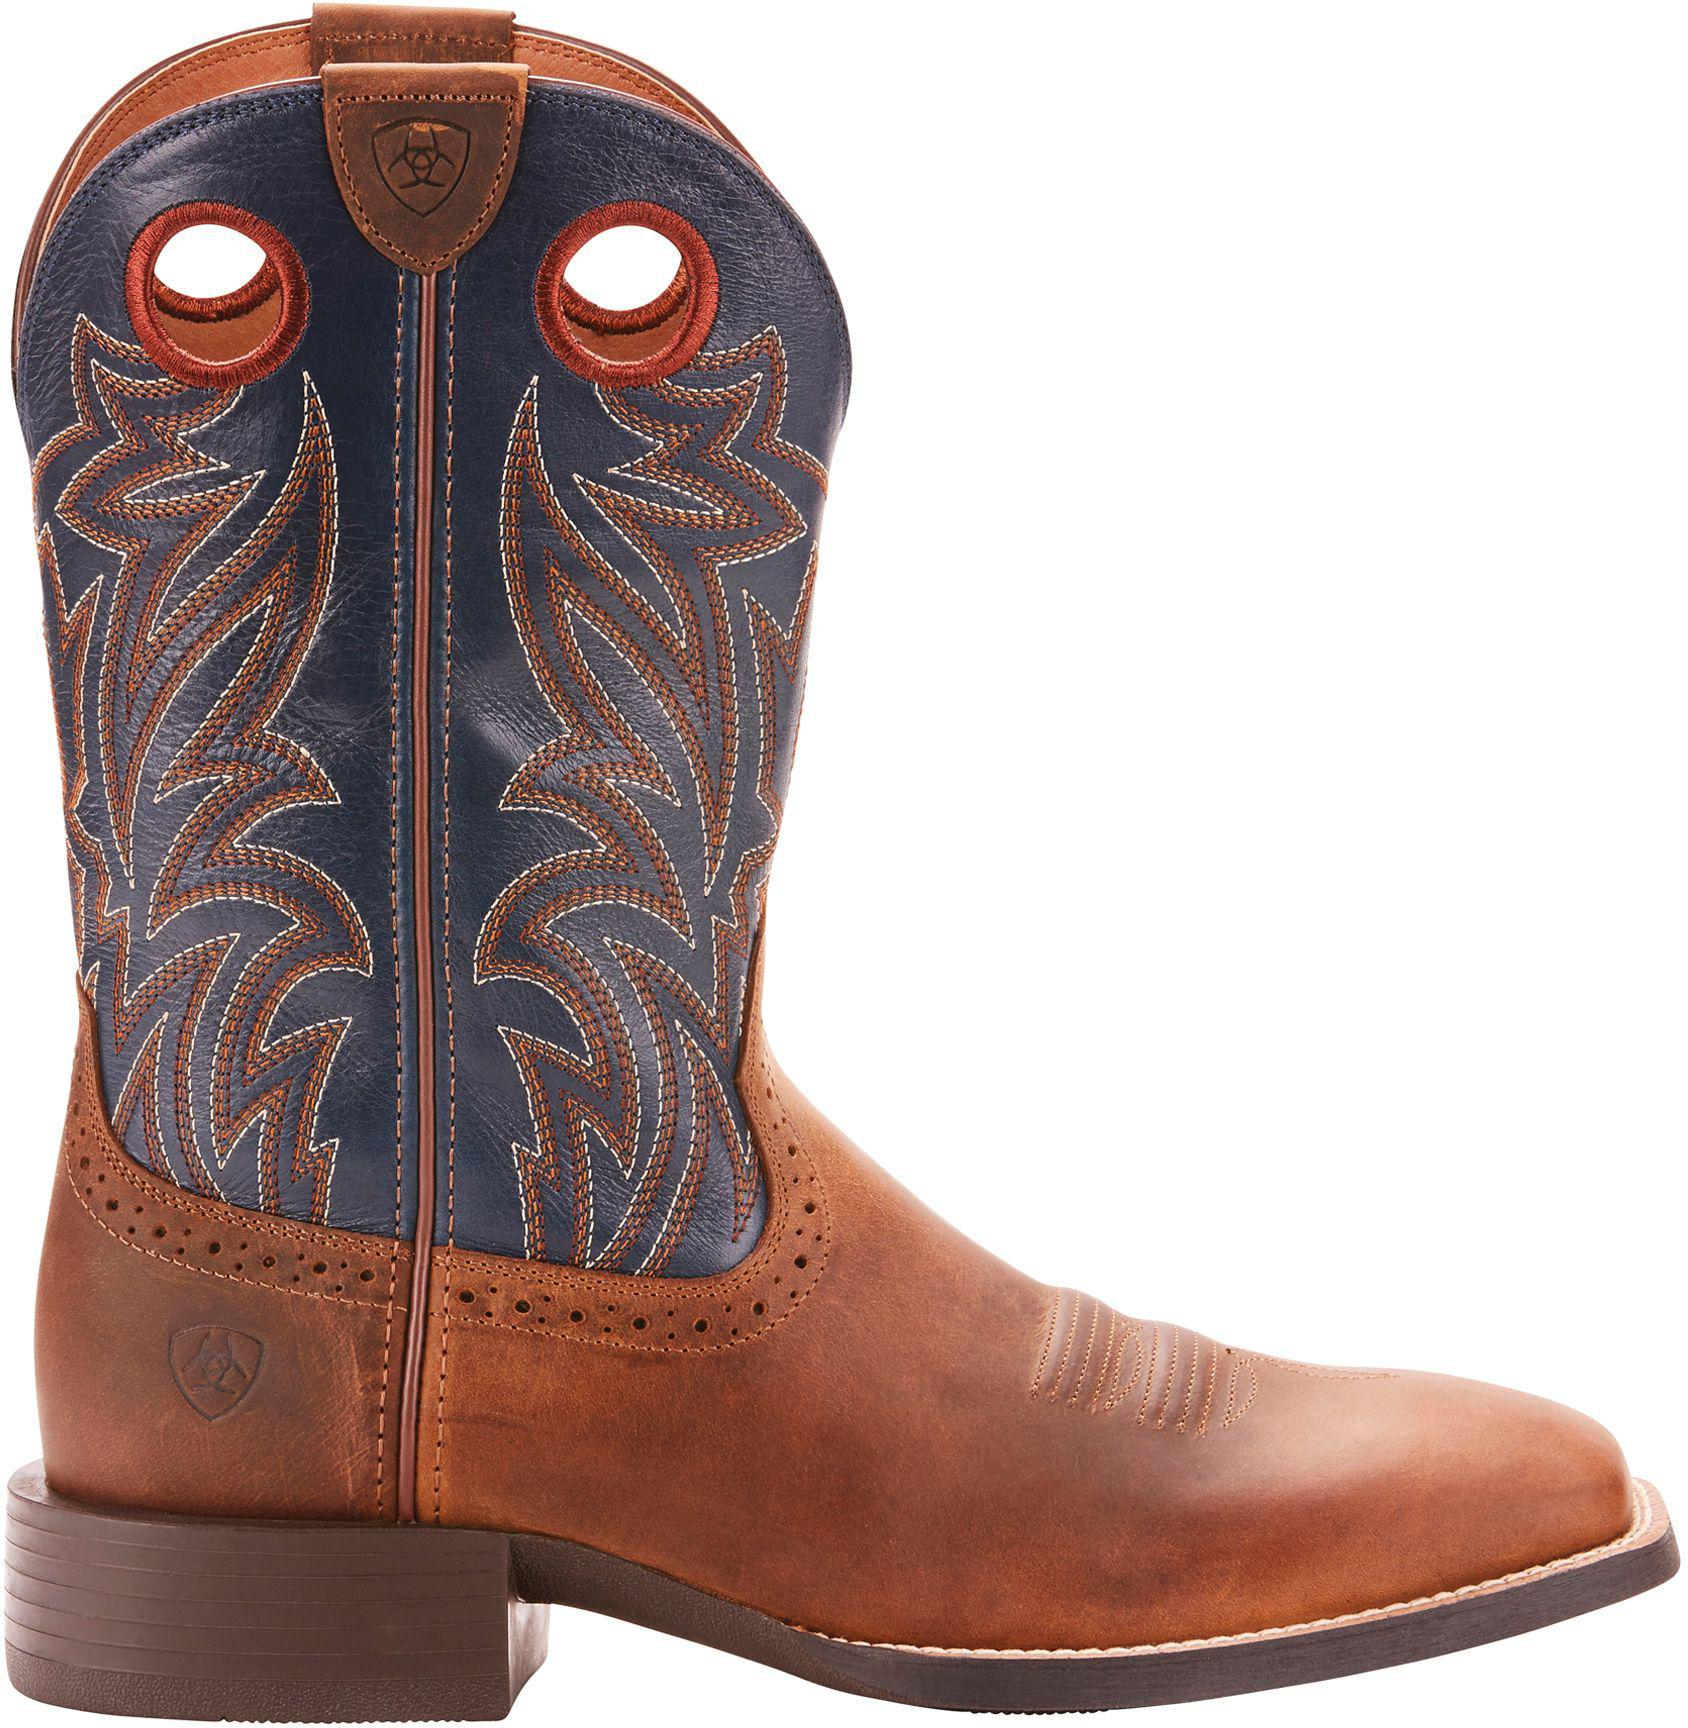 69a8e1613b2 Lyst - Ariat Sport Sidebet Dist Work Boots in Brown for Men